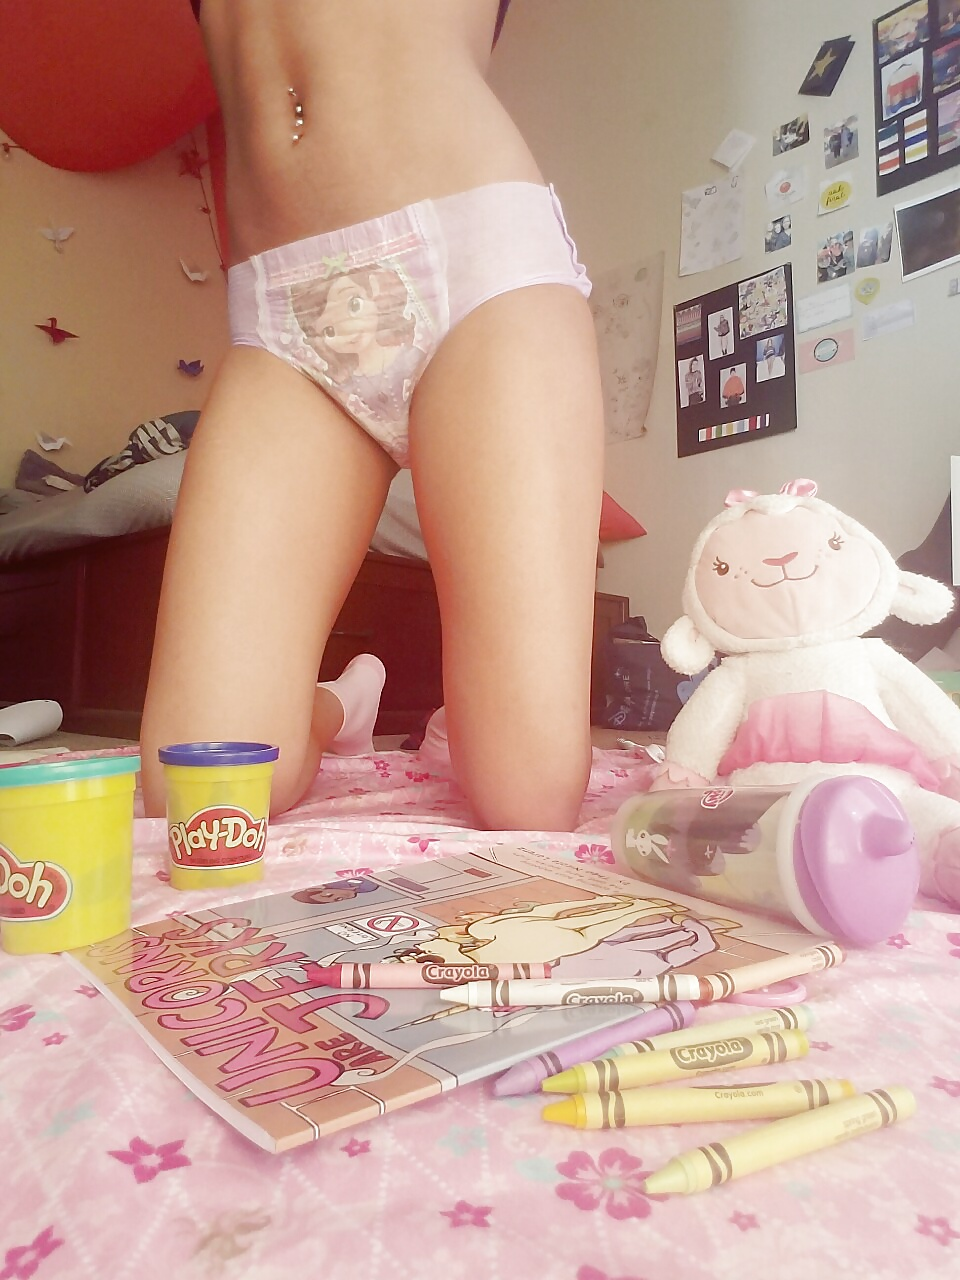 pictures-of-young-teens-wearing-diapers